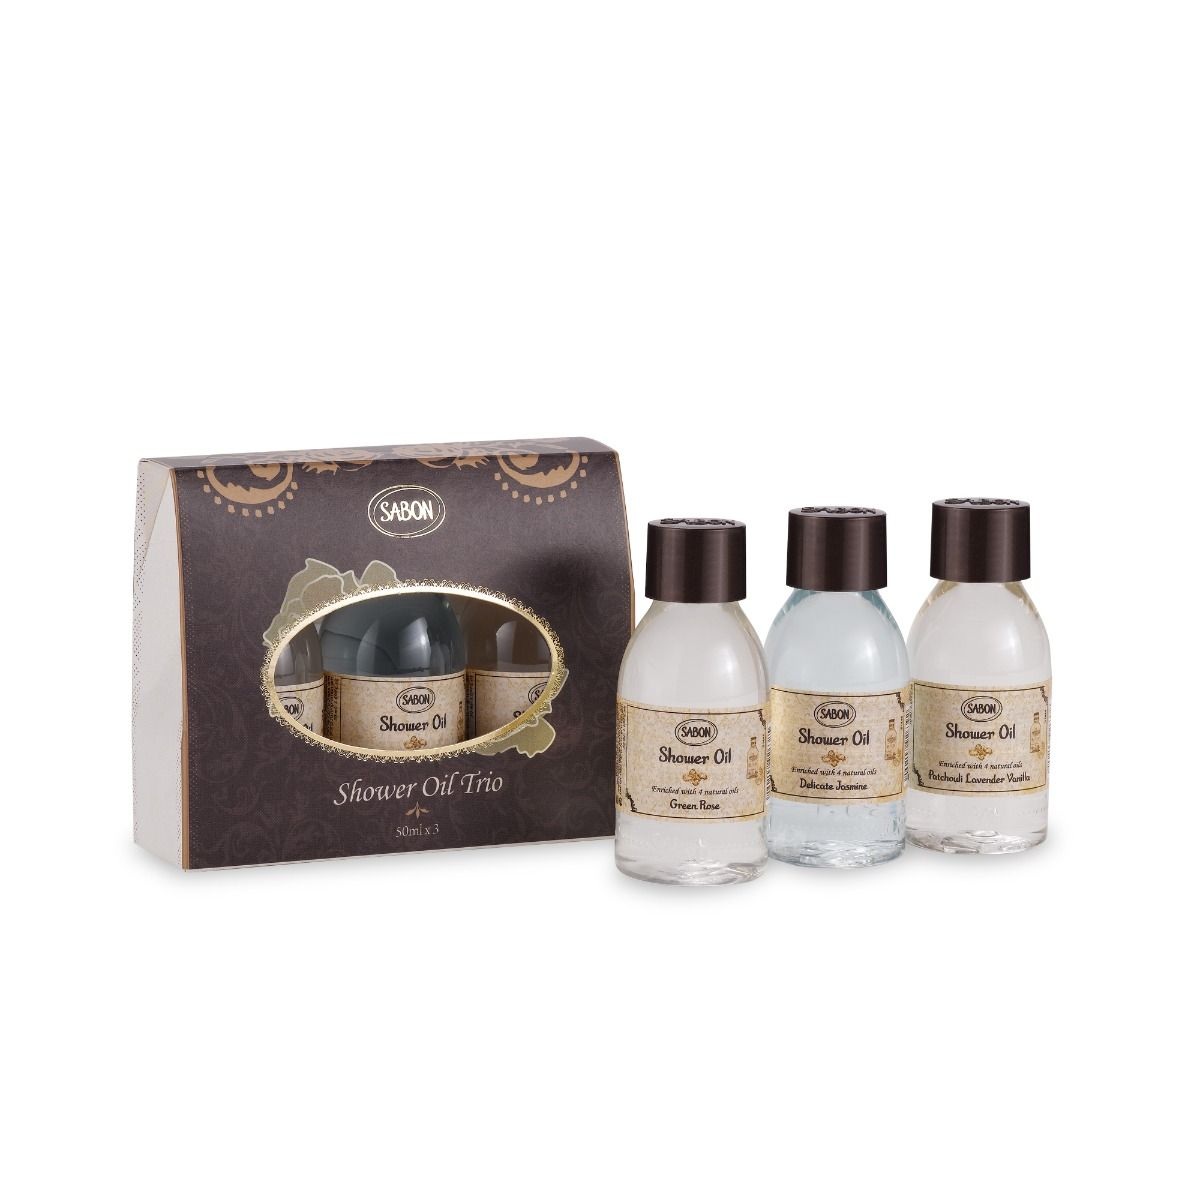 Shower Oil Trio Gift Set